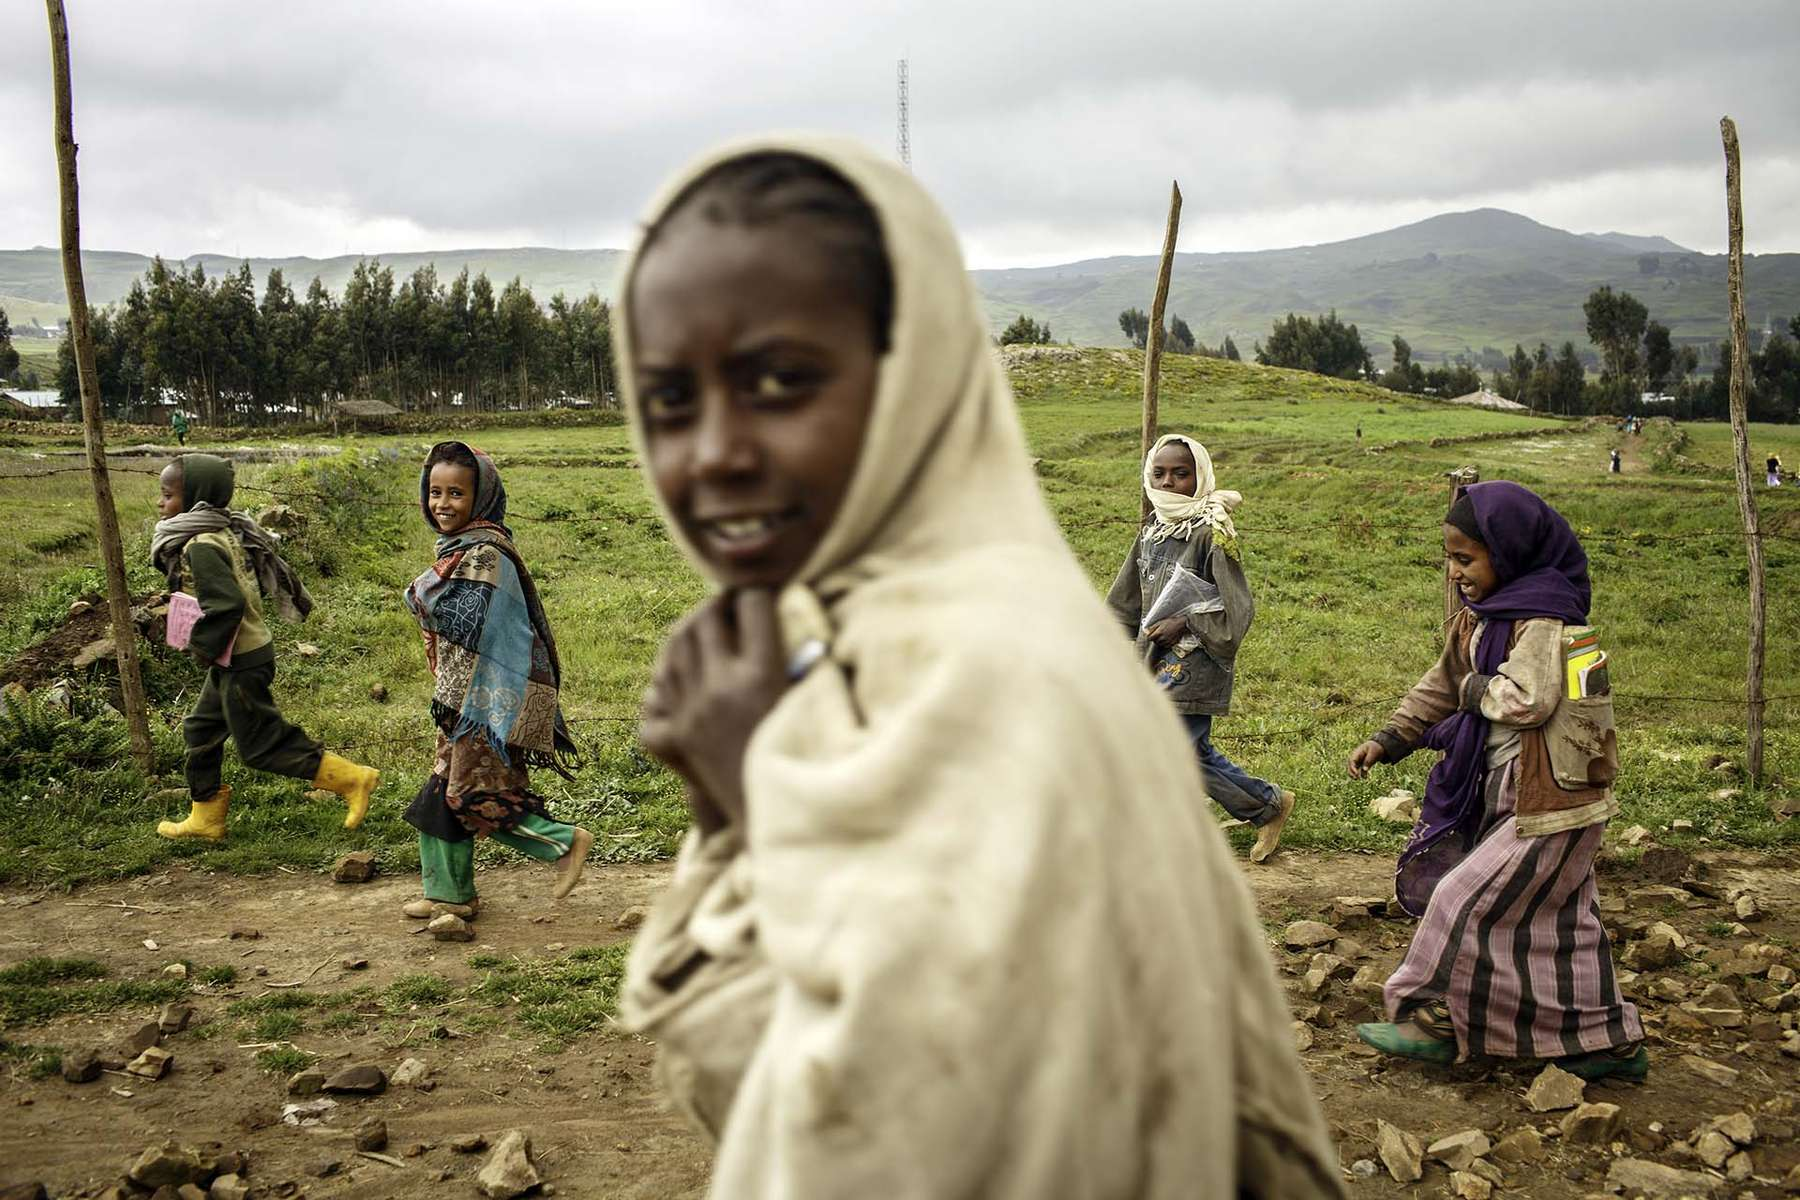 Children return home from school in the village of Guguftu in Amhra region of Ethiopia 9 October 2013.